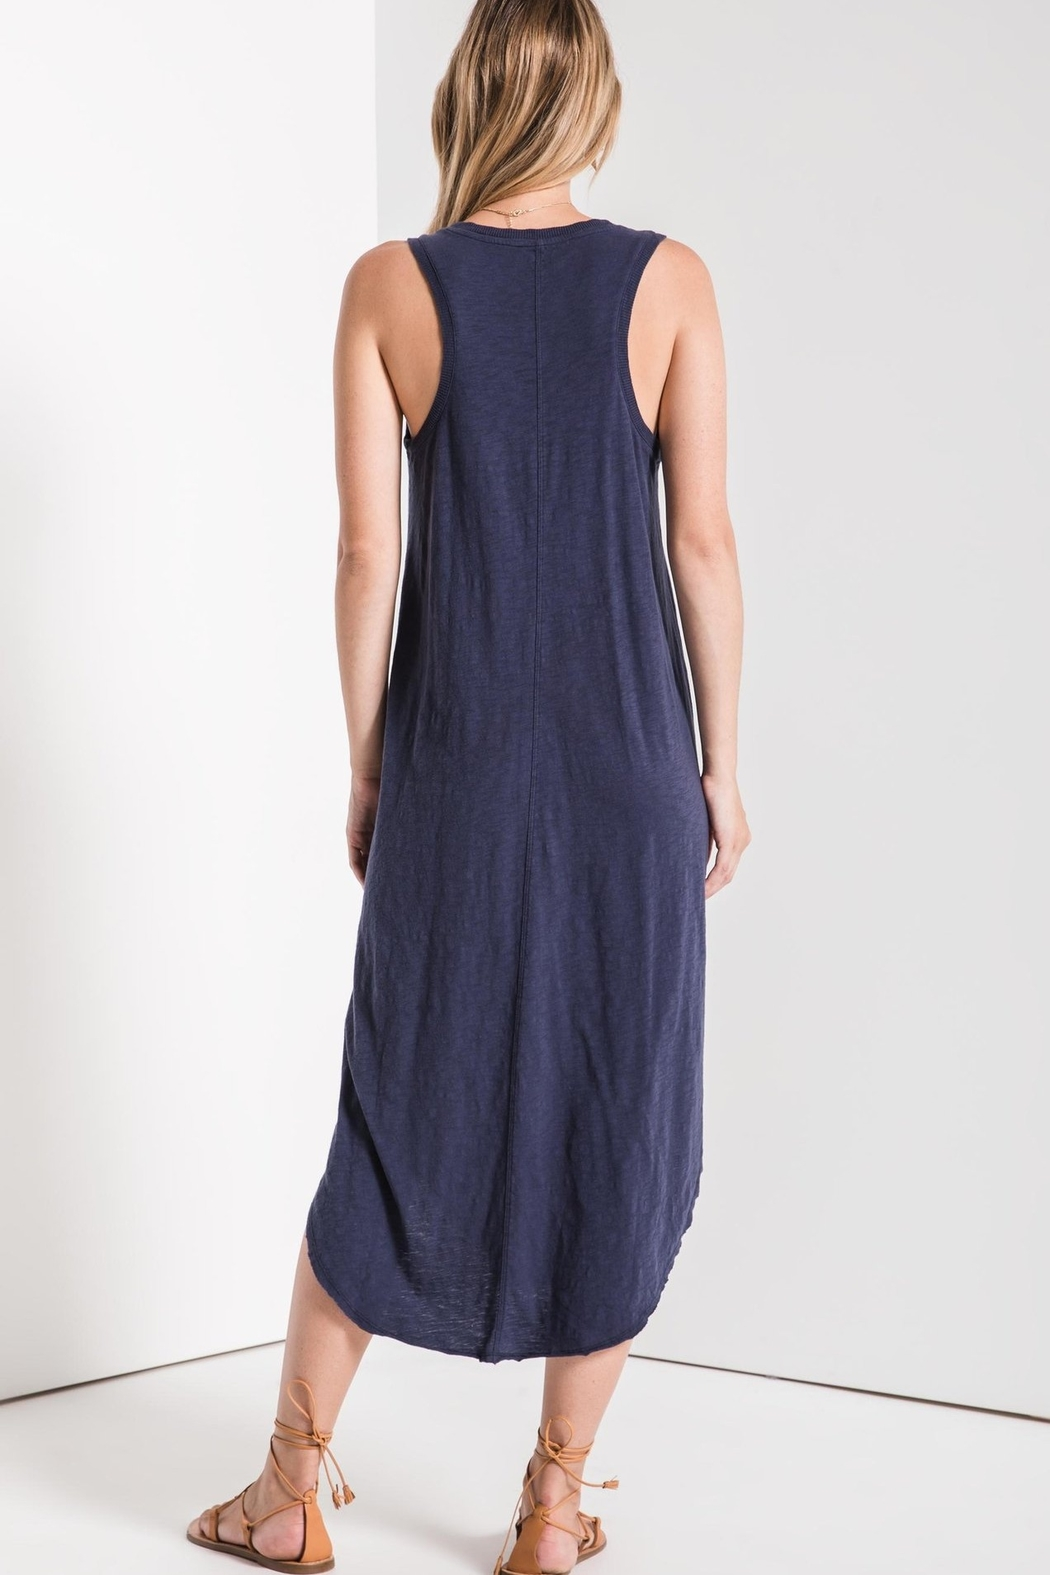 z supply The Reverie Dress - Side Cropped Image